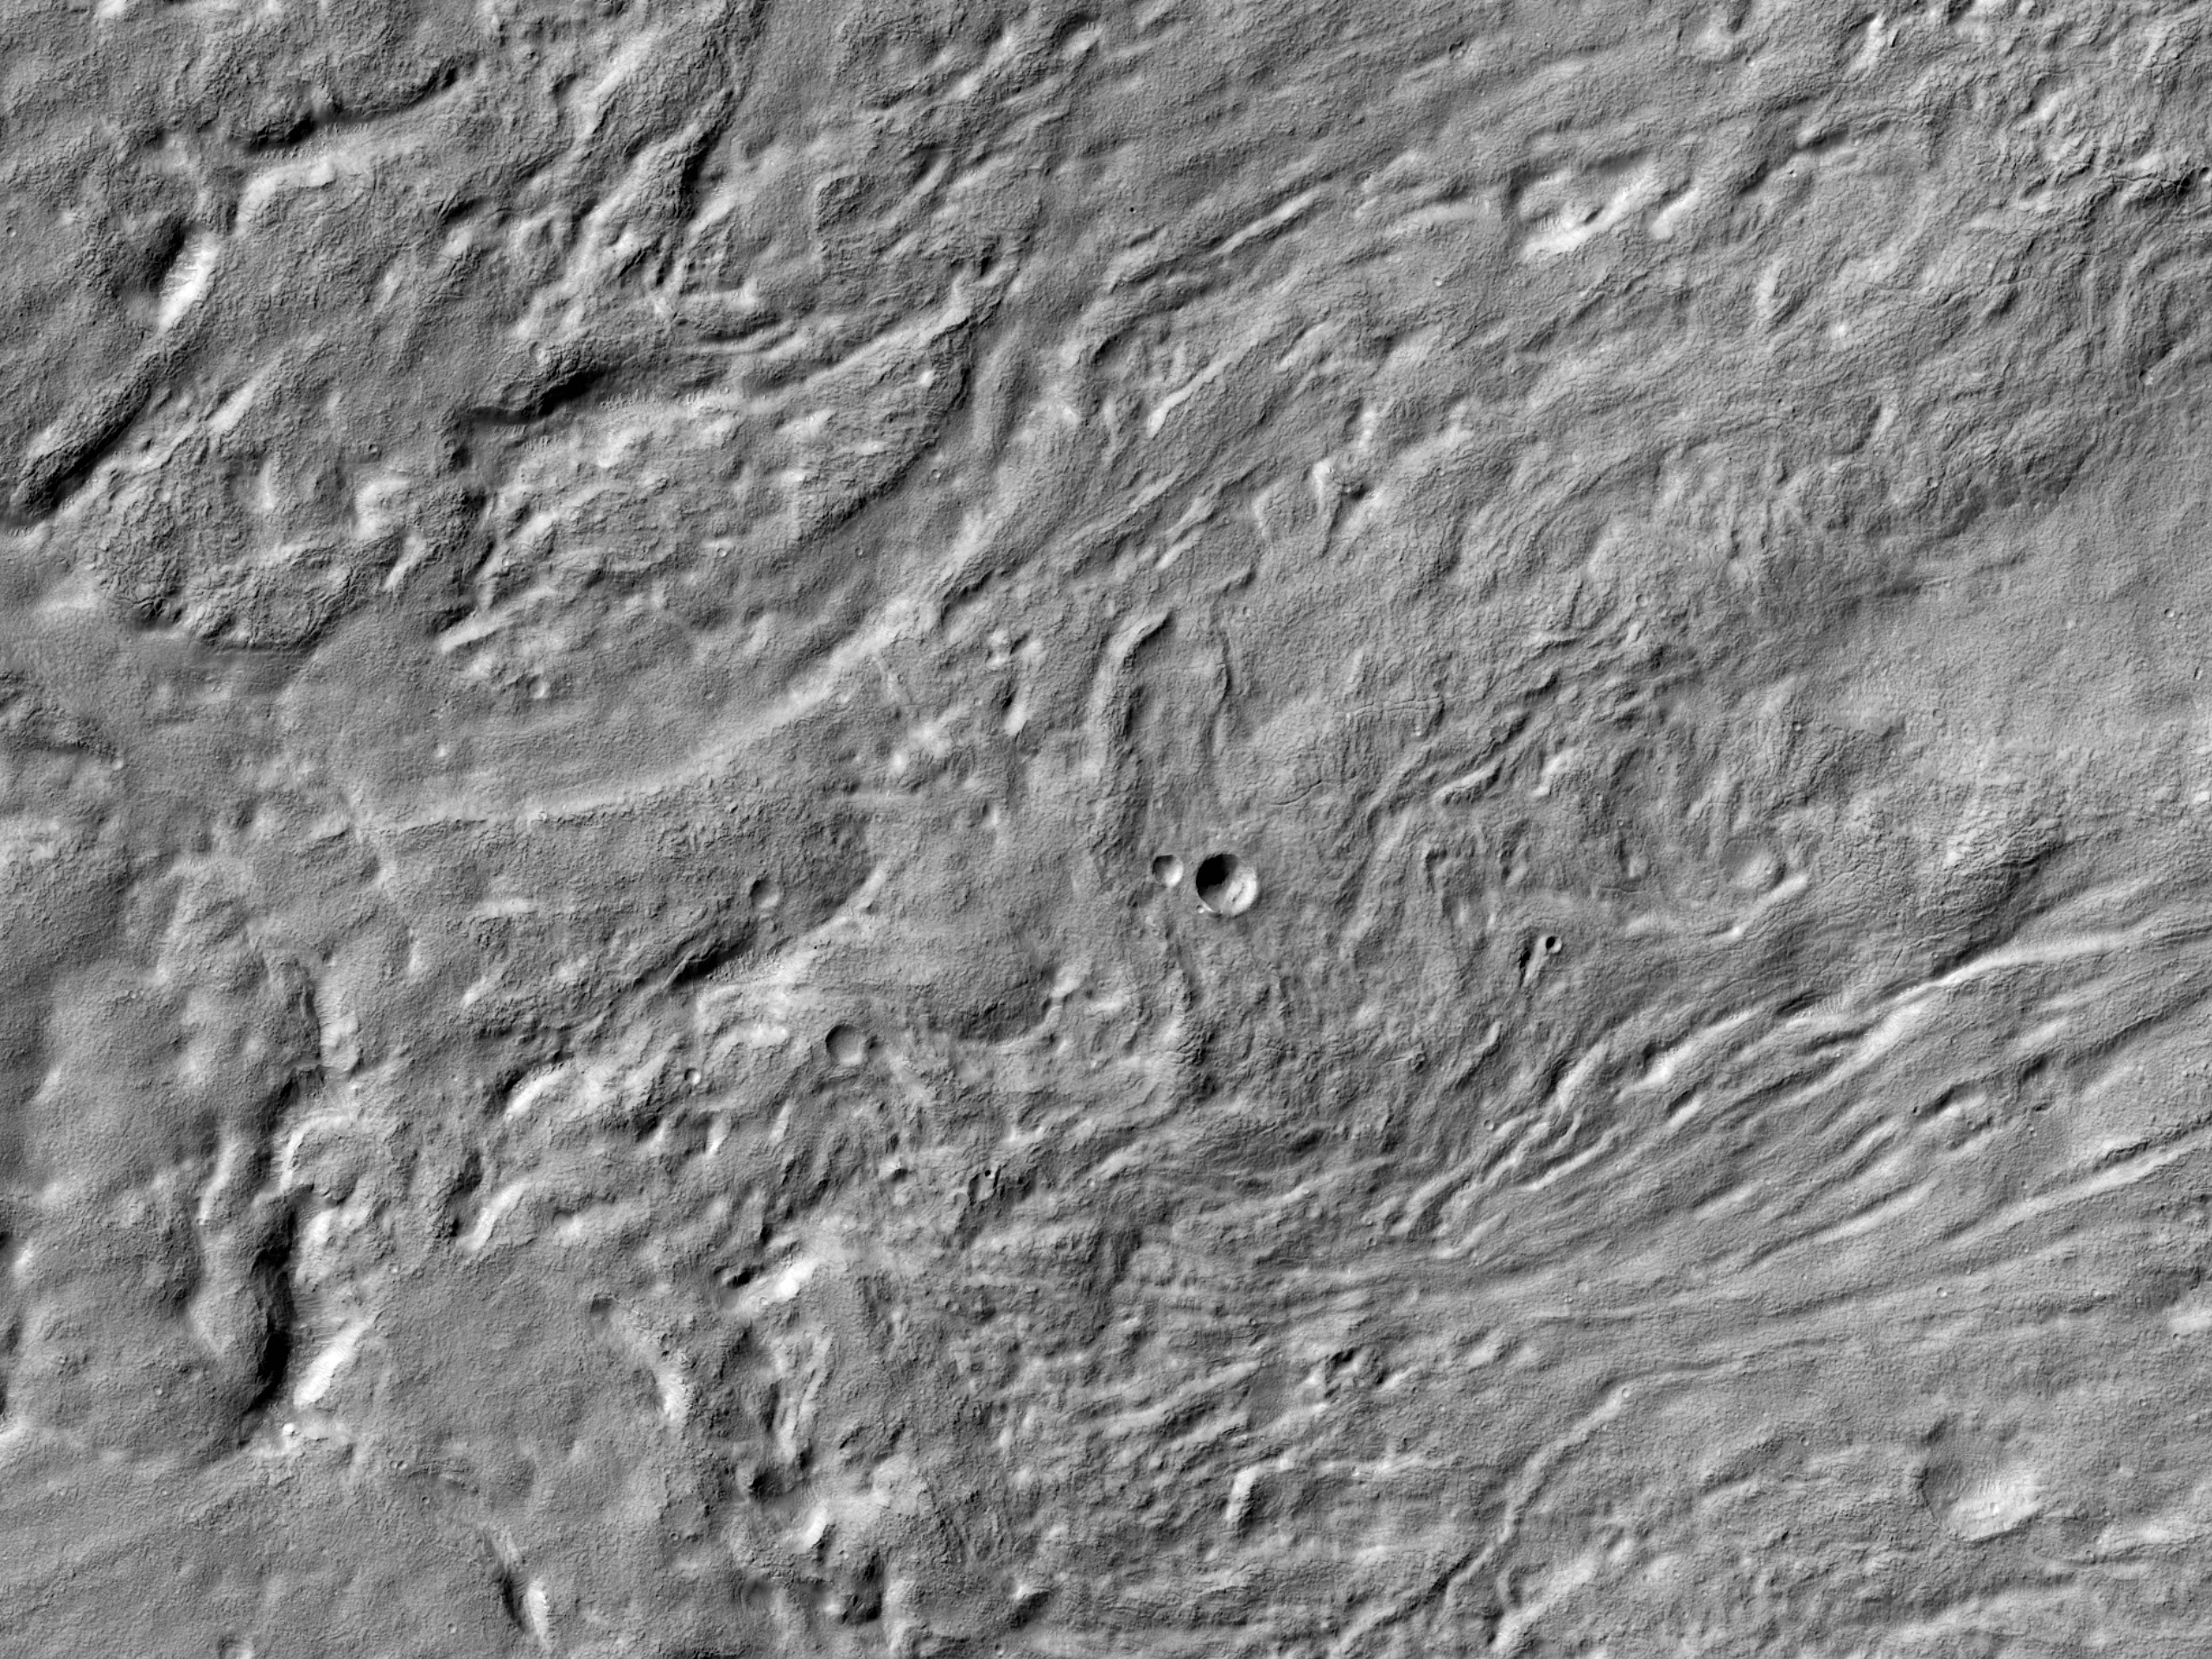 A Channel in Ejecta near Reull Vallis